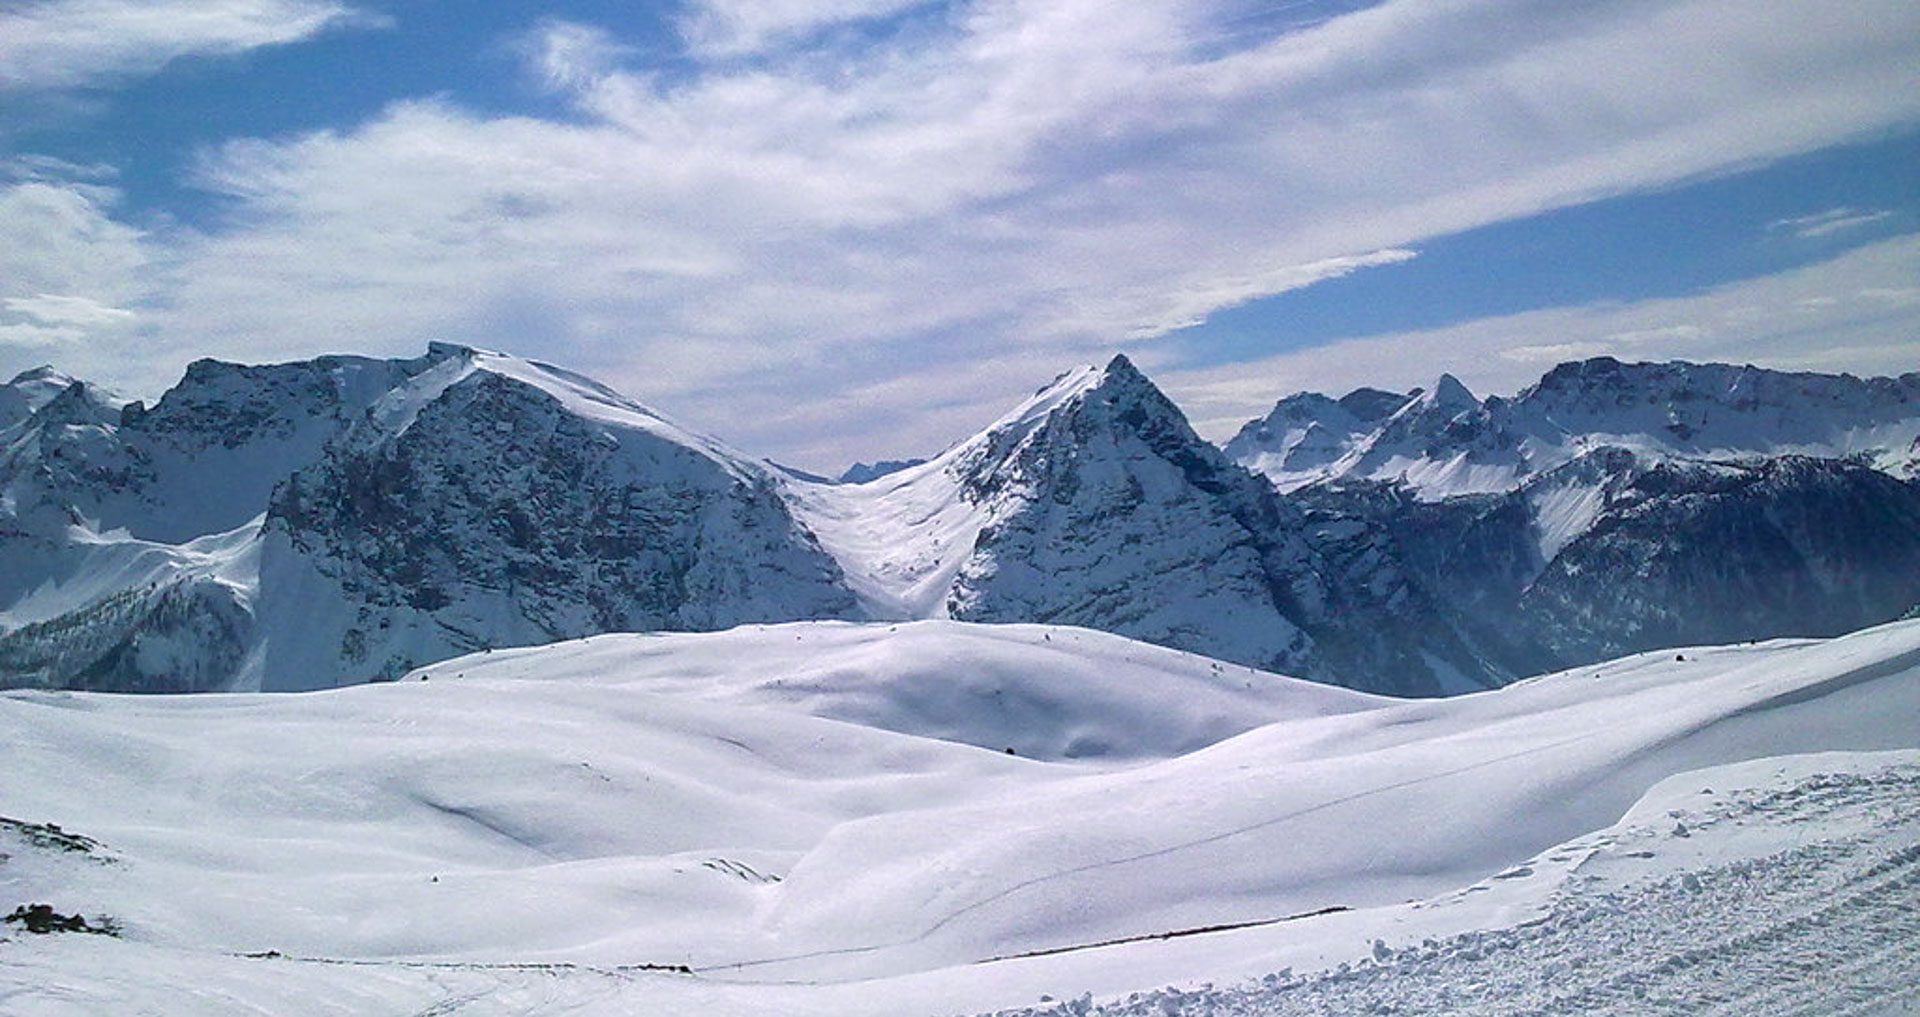 The ski slopes of Claviere in the mountains